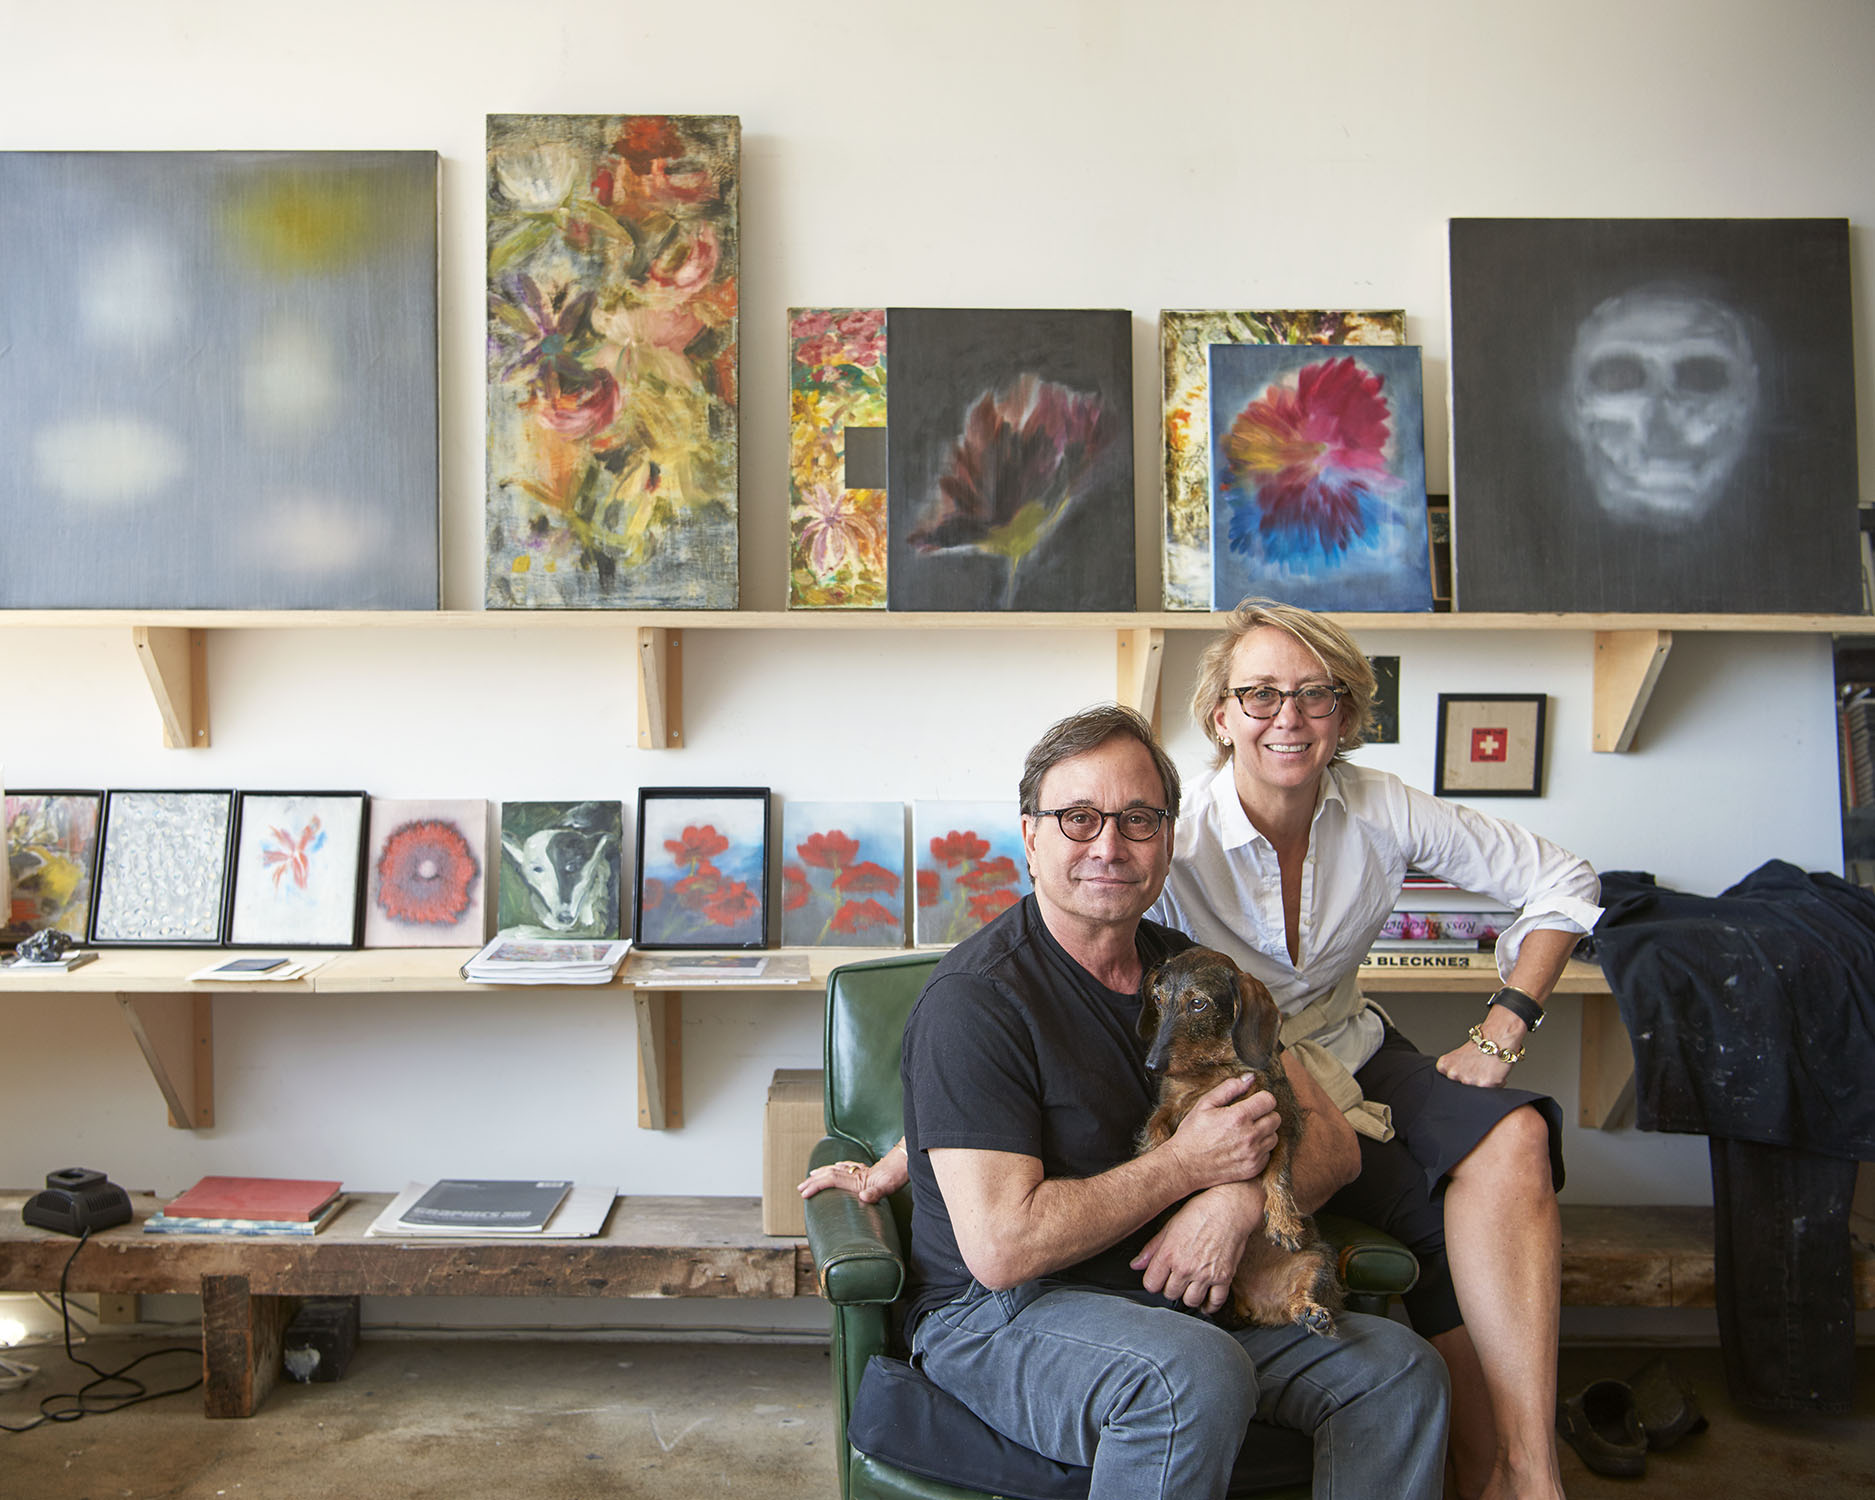 Ross Bleckner and Suzanne Donaldson photo by Jason Schmidt